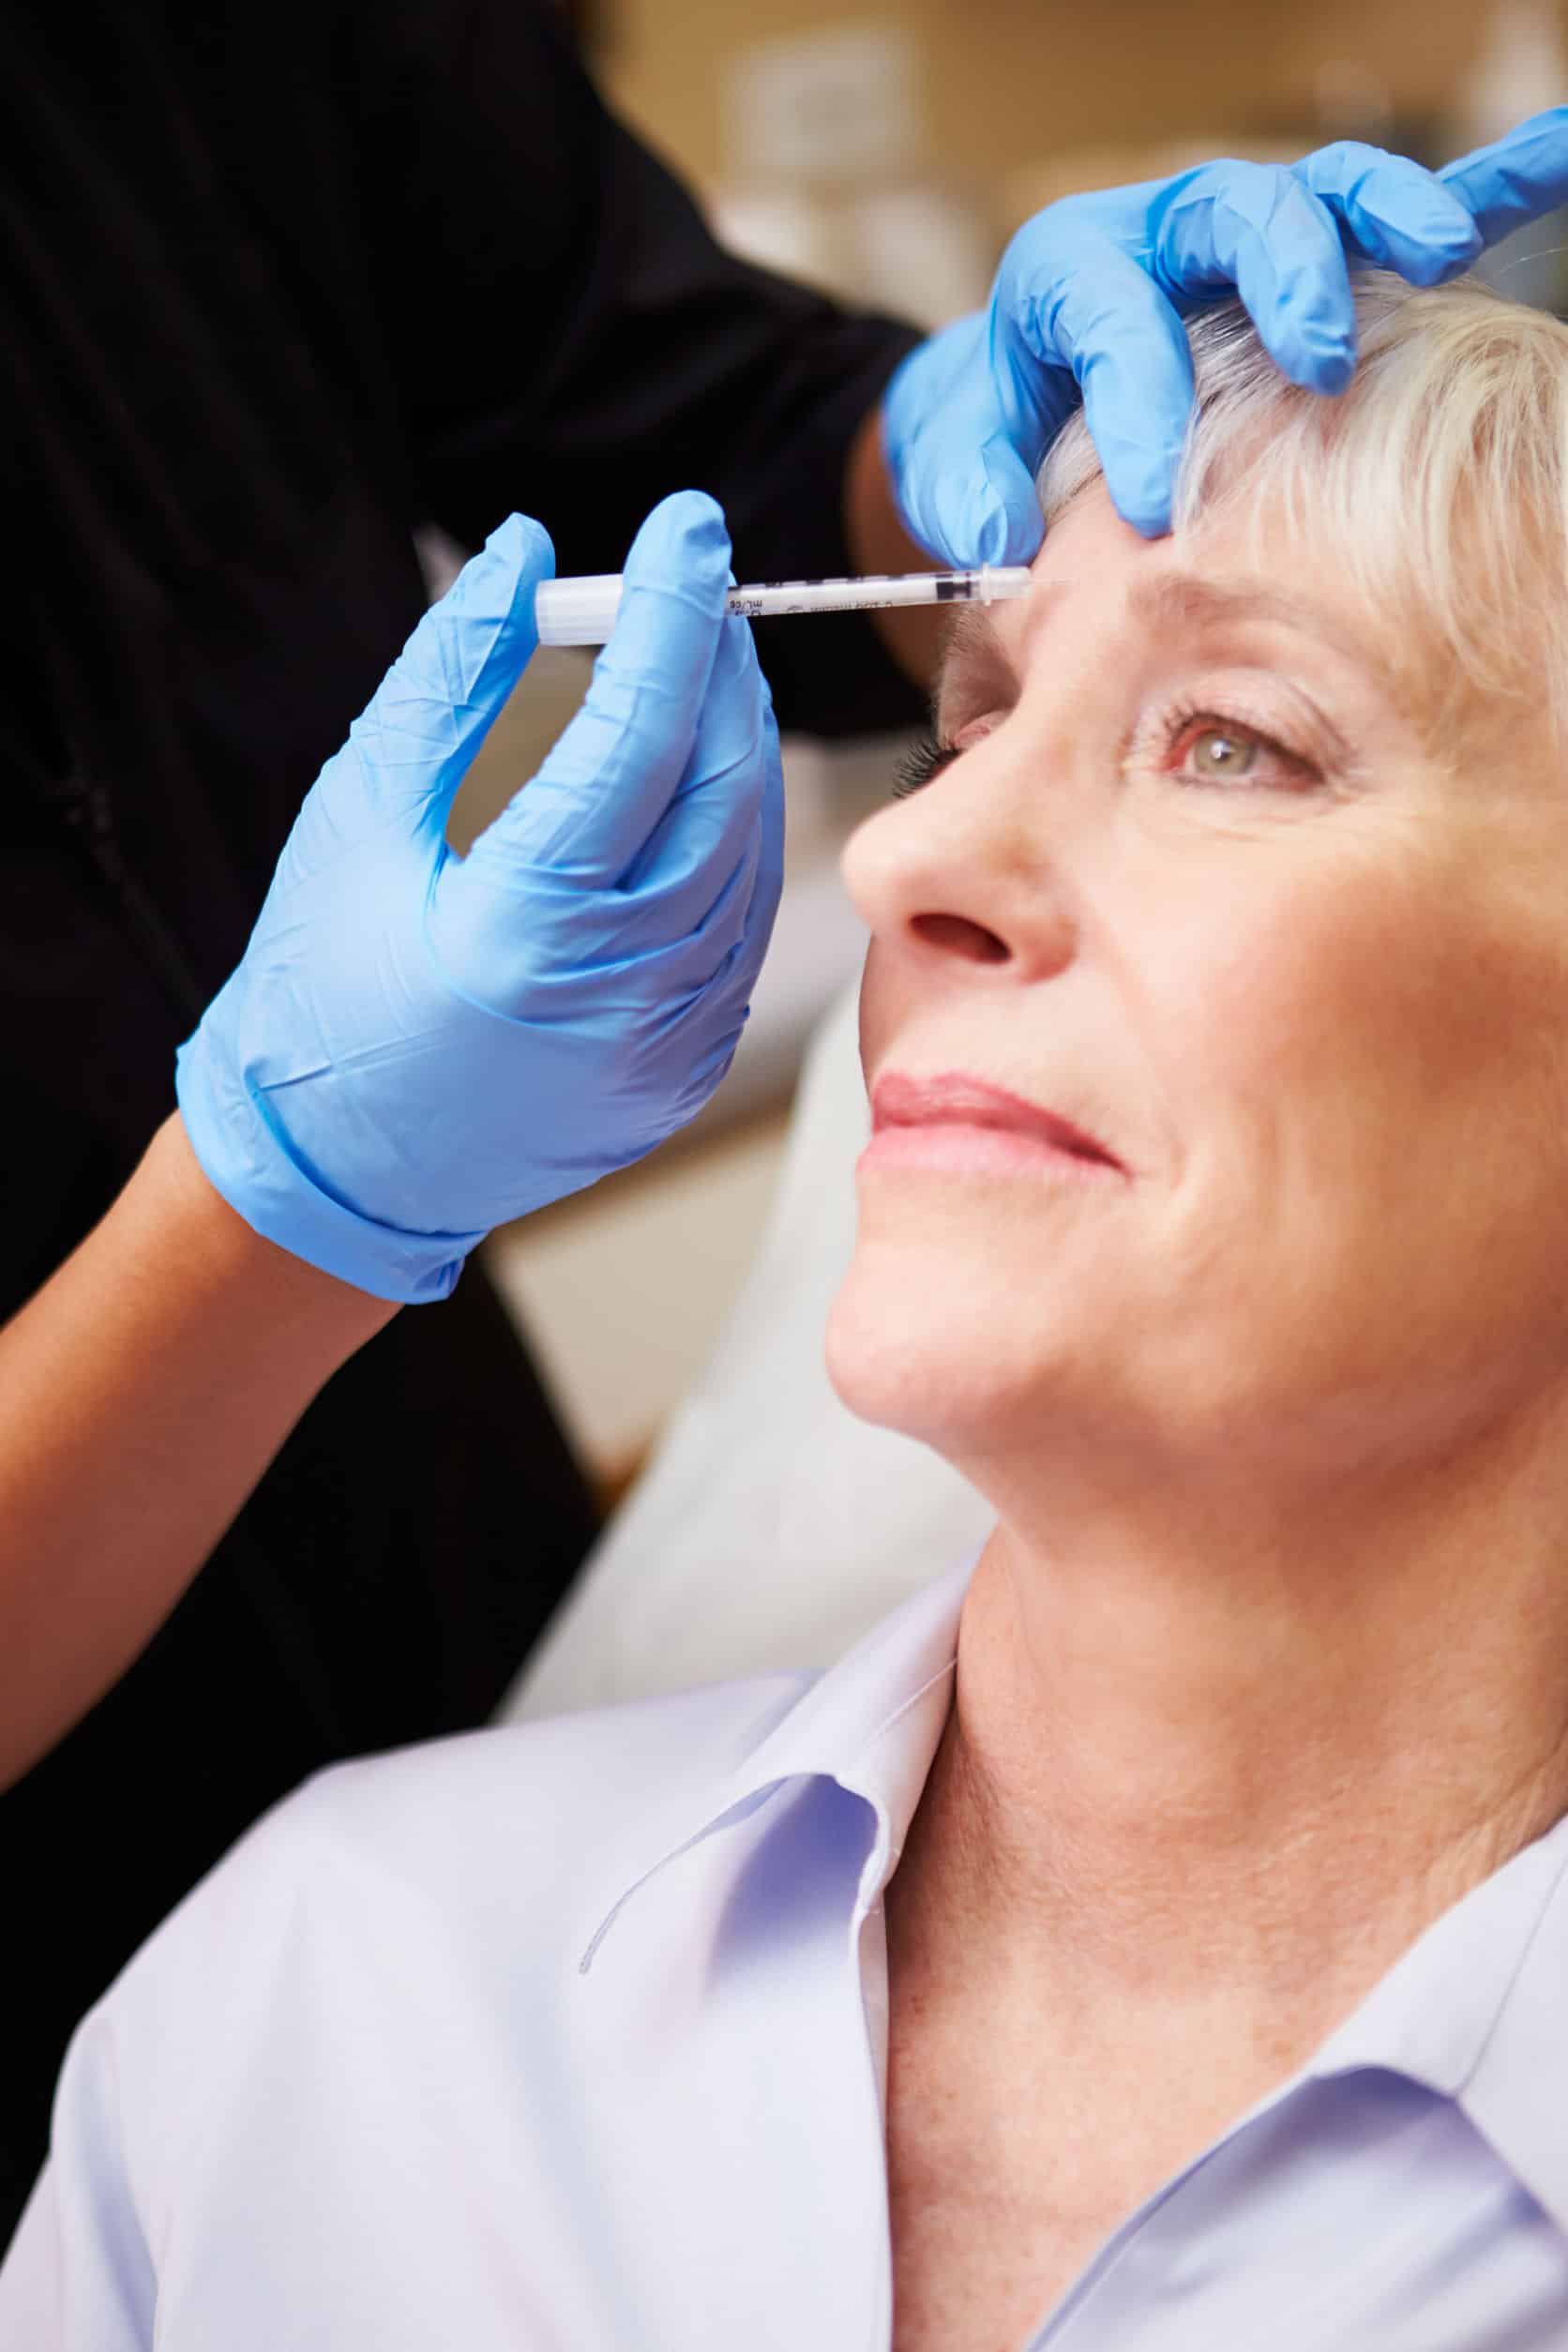 North Vancouver Botox services being administered